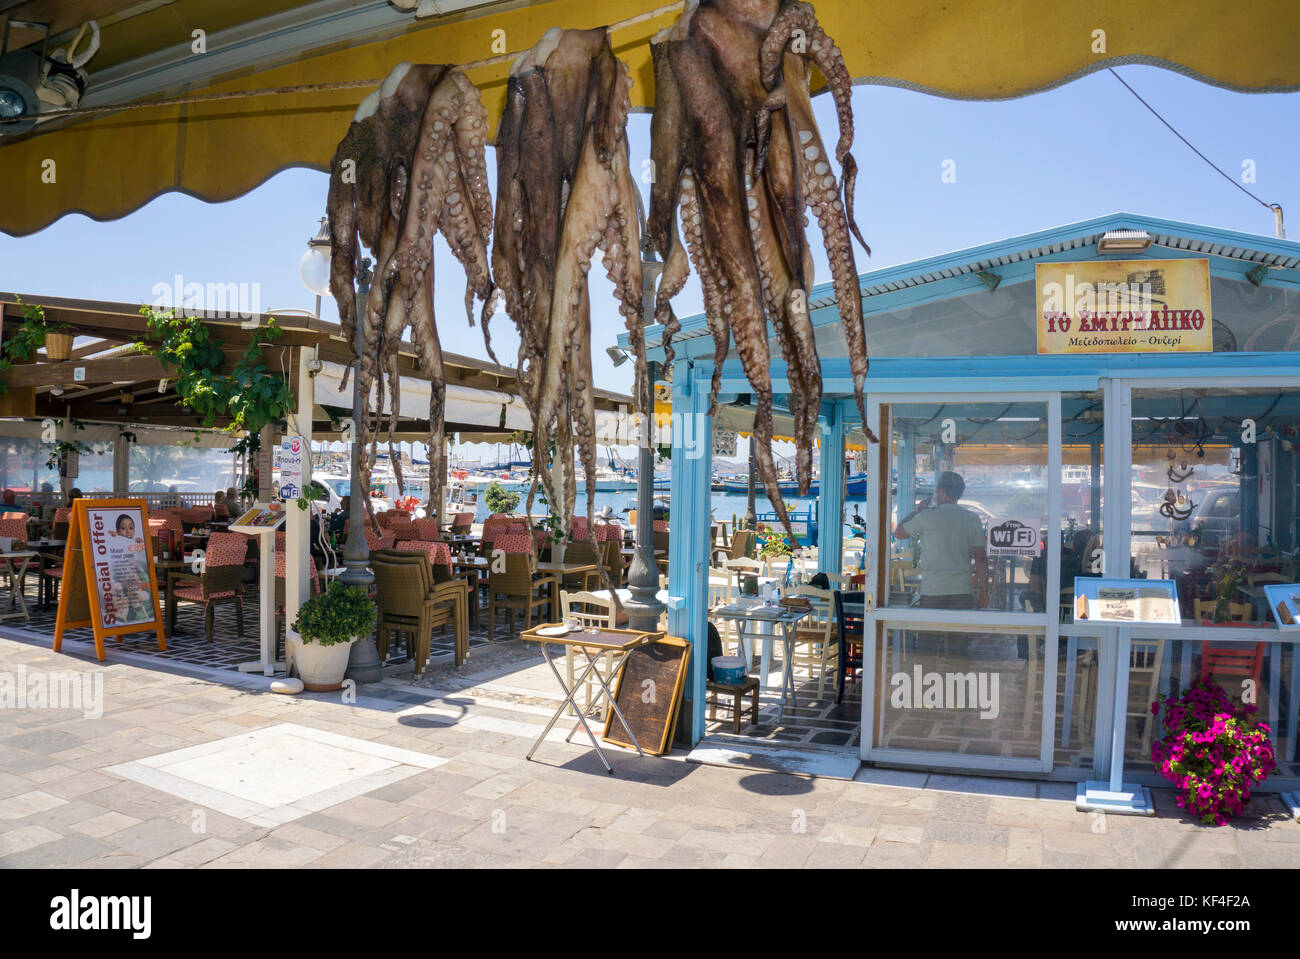 Octopus hanging for drying at fish restaurant, harbour of Naxos-town, Naxos island, Cyclades, Aegean, Greece - Stock Image